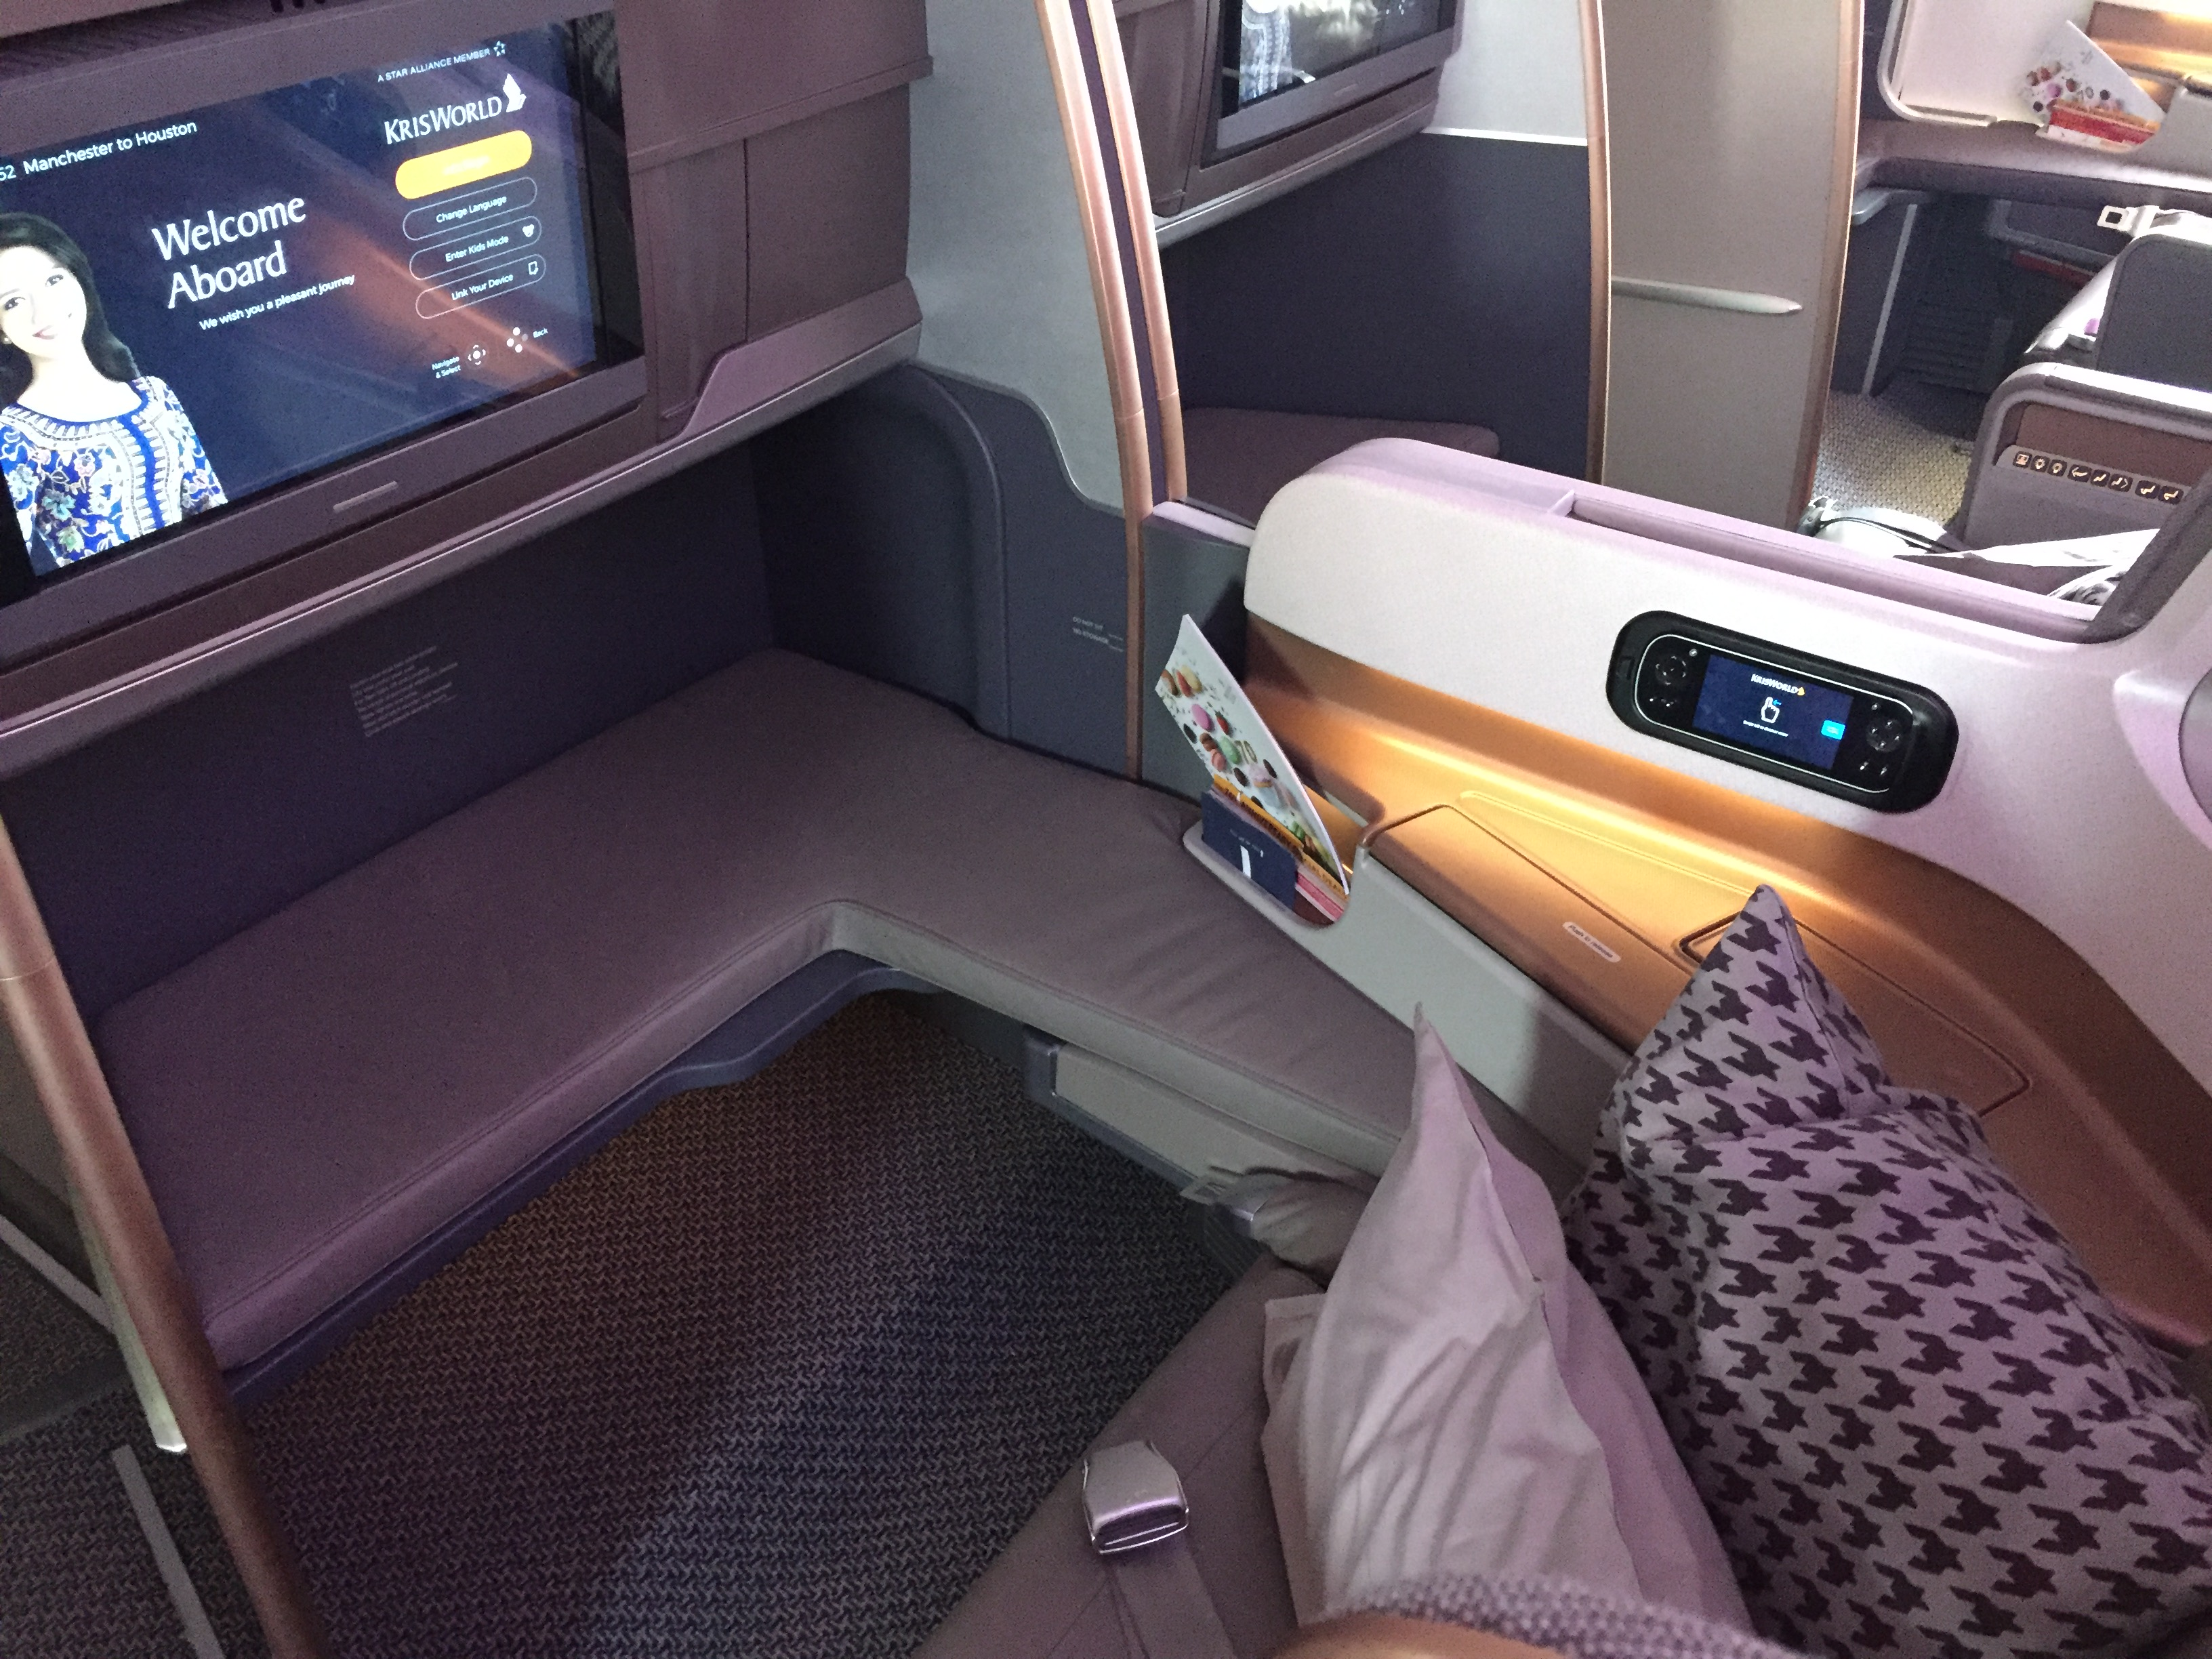 The bulkhead seat on a Singapore Airlines business class flight from Manchester to Houston